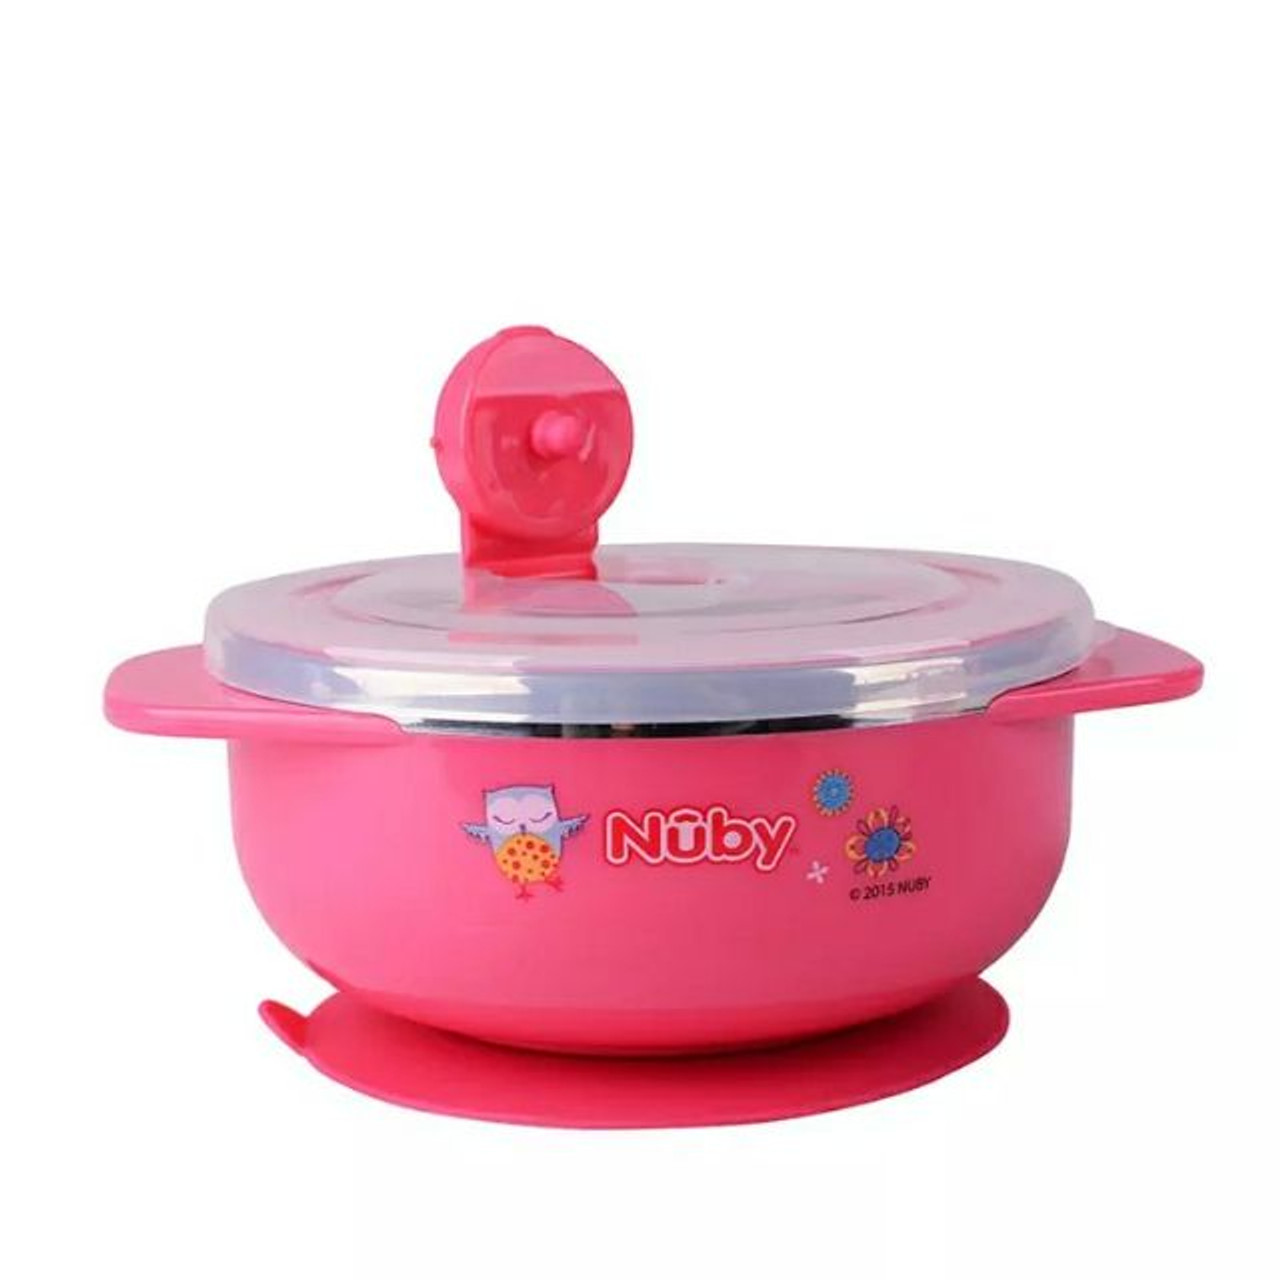 Nuby Stainless Steel Suction Bowl - PINK